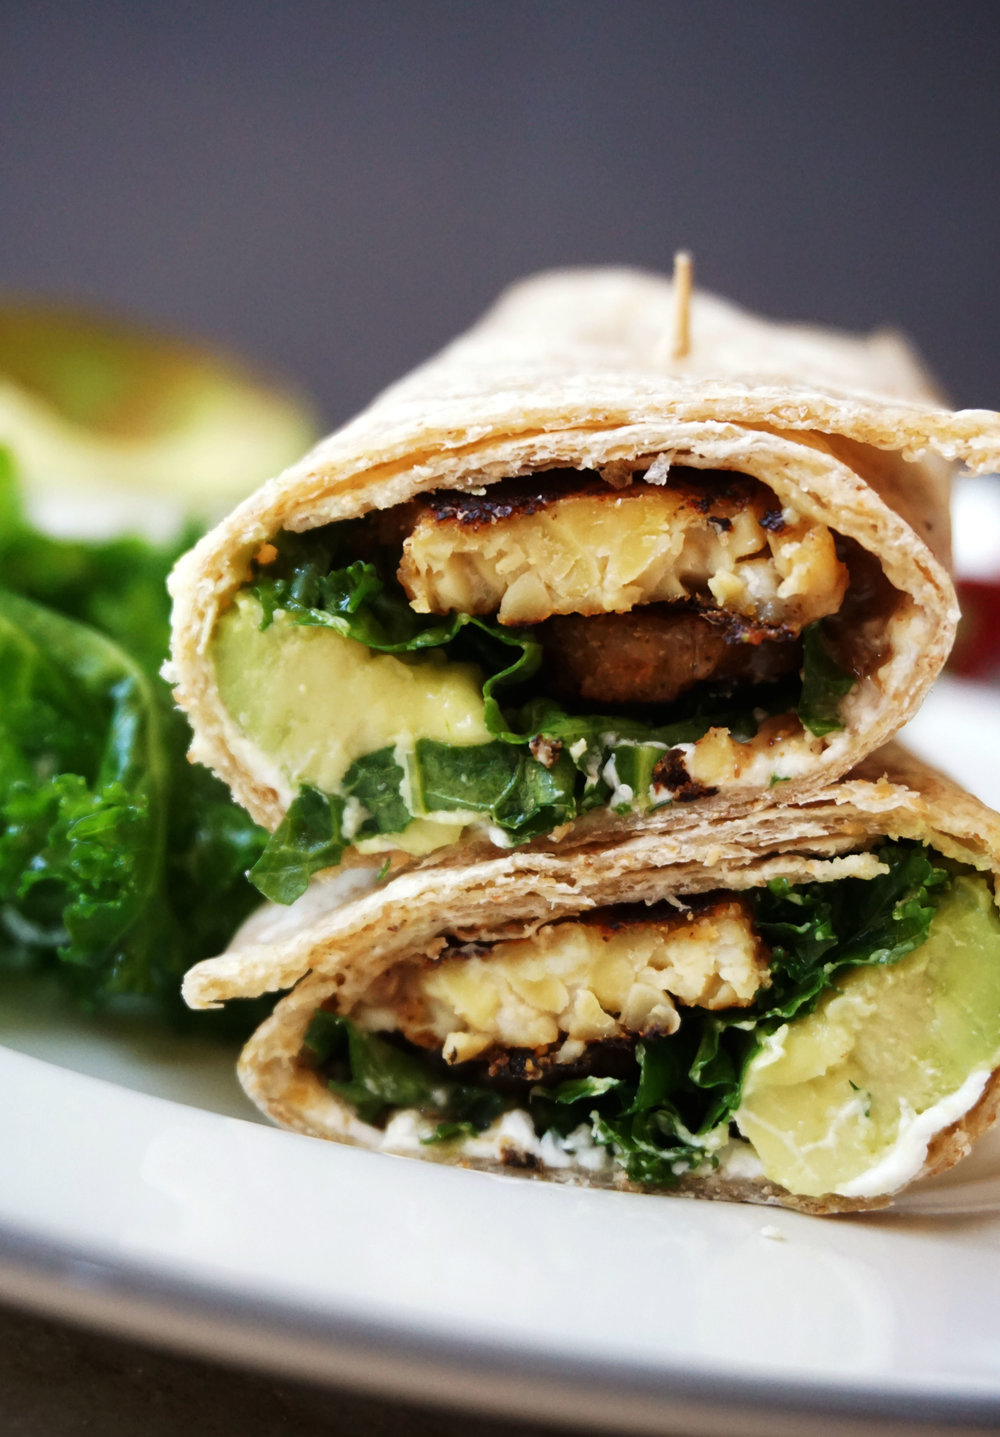 Goat Cheese and Kale Wrap w/ Blackened Tempeh